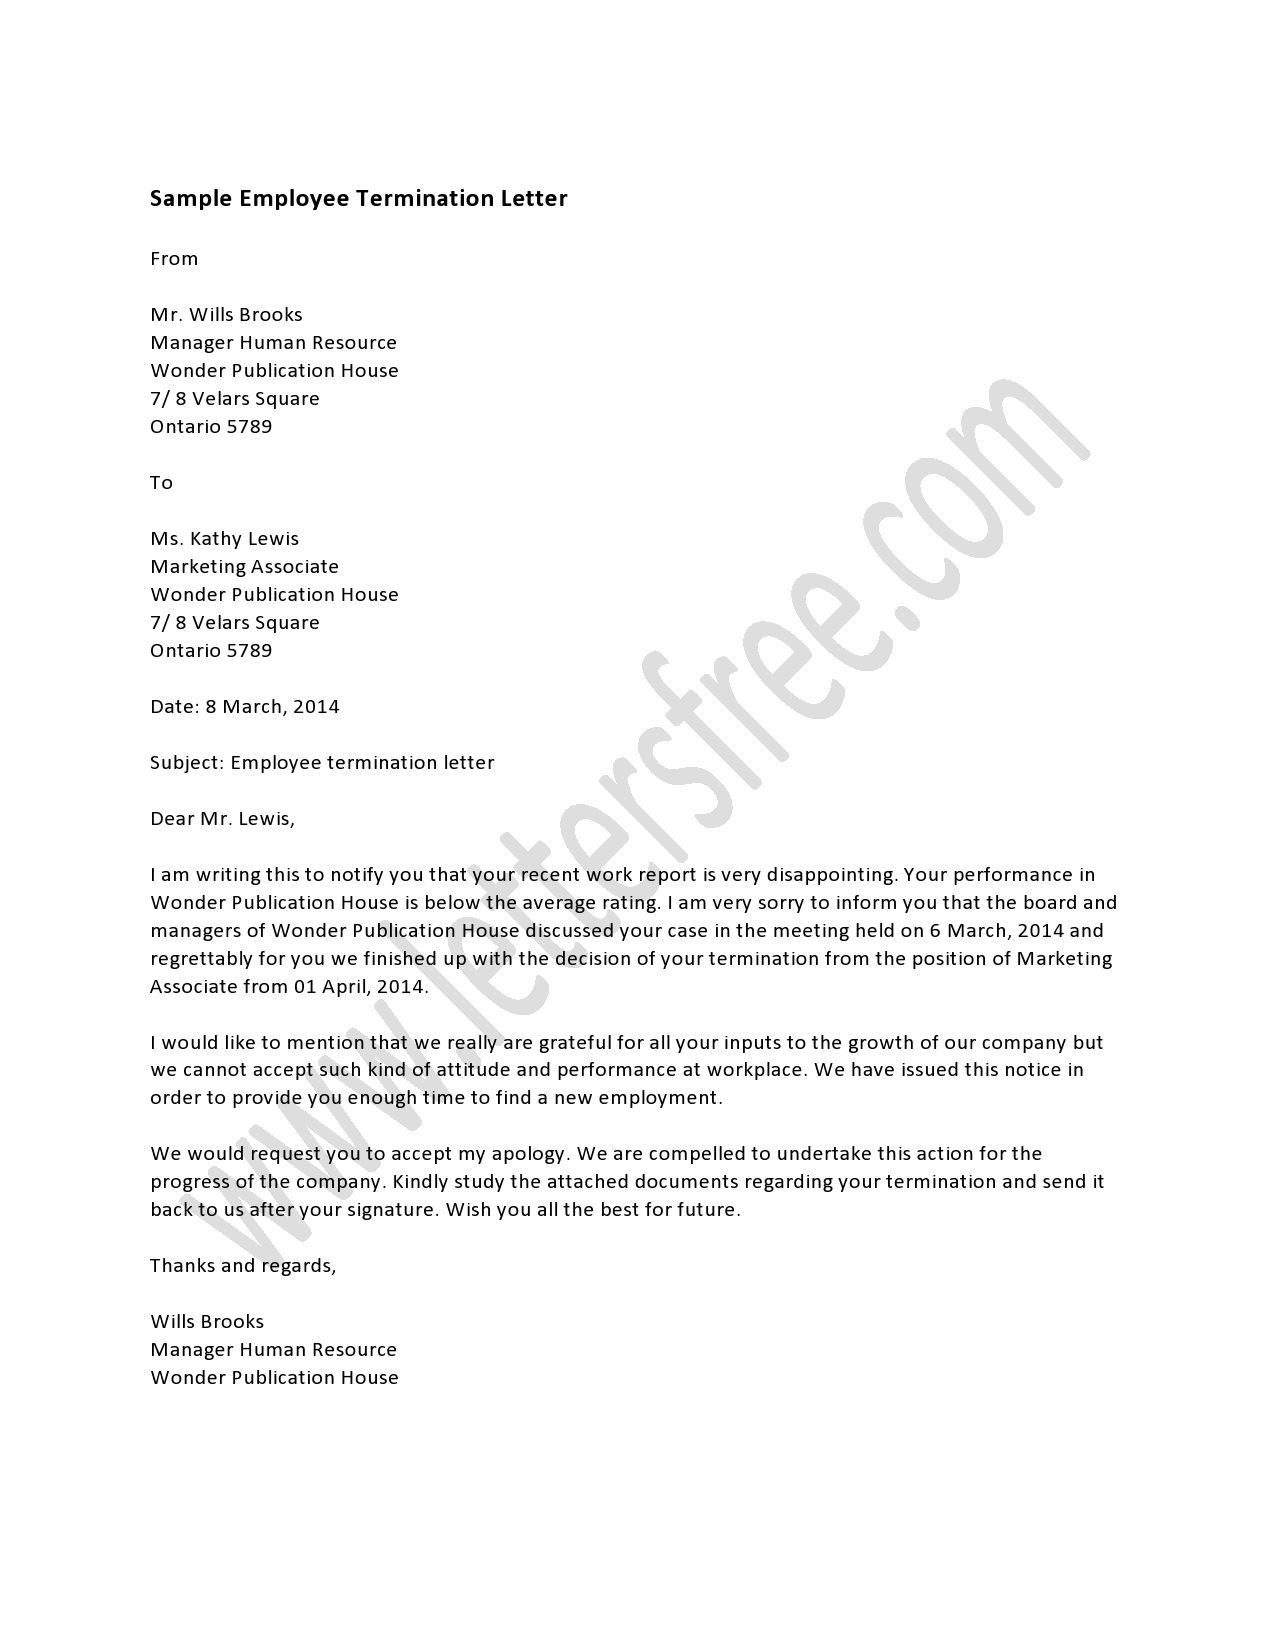 Employee transfer letter is written to notify the employee about – Notify Letter